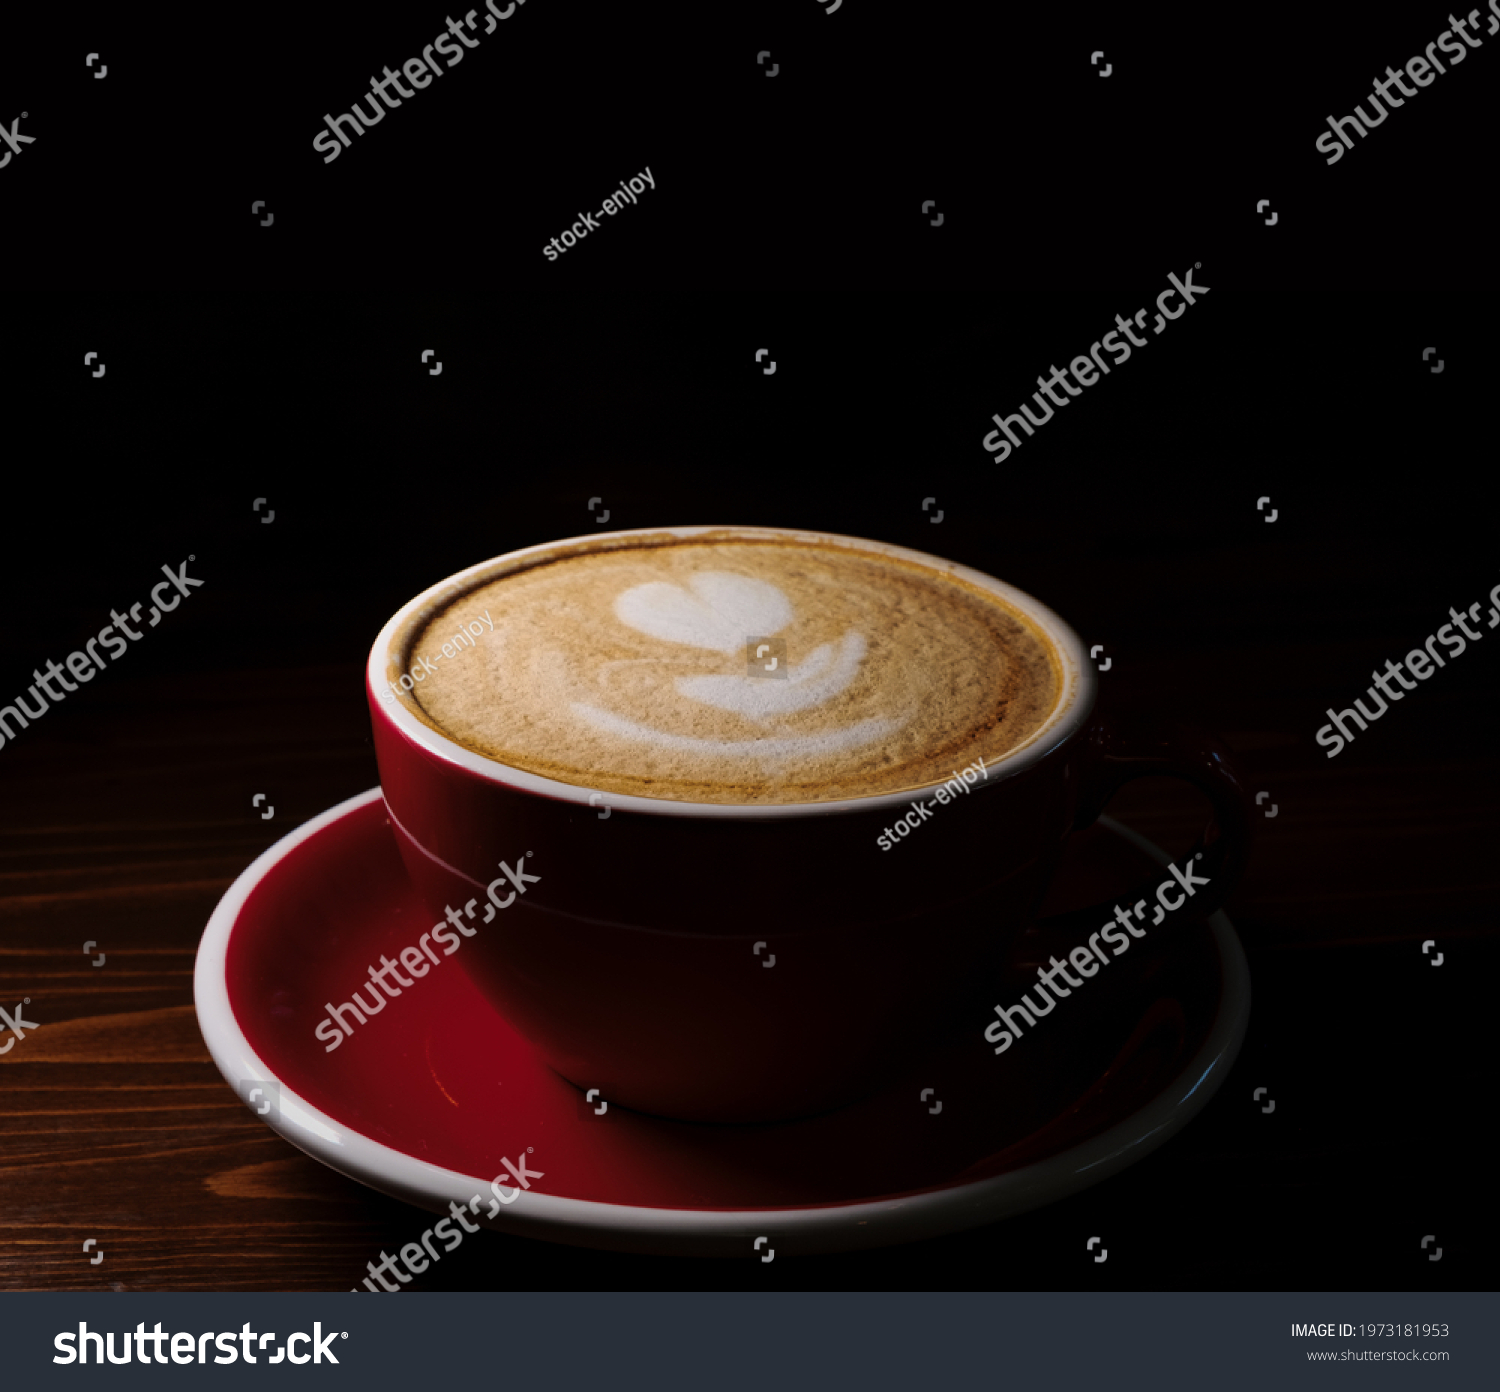 stock-photo-red-cup-of-latte-coffe-with-